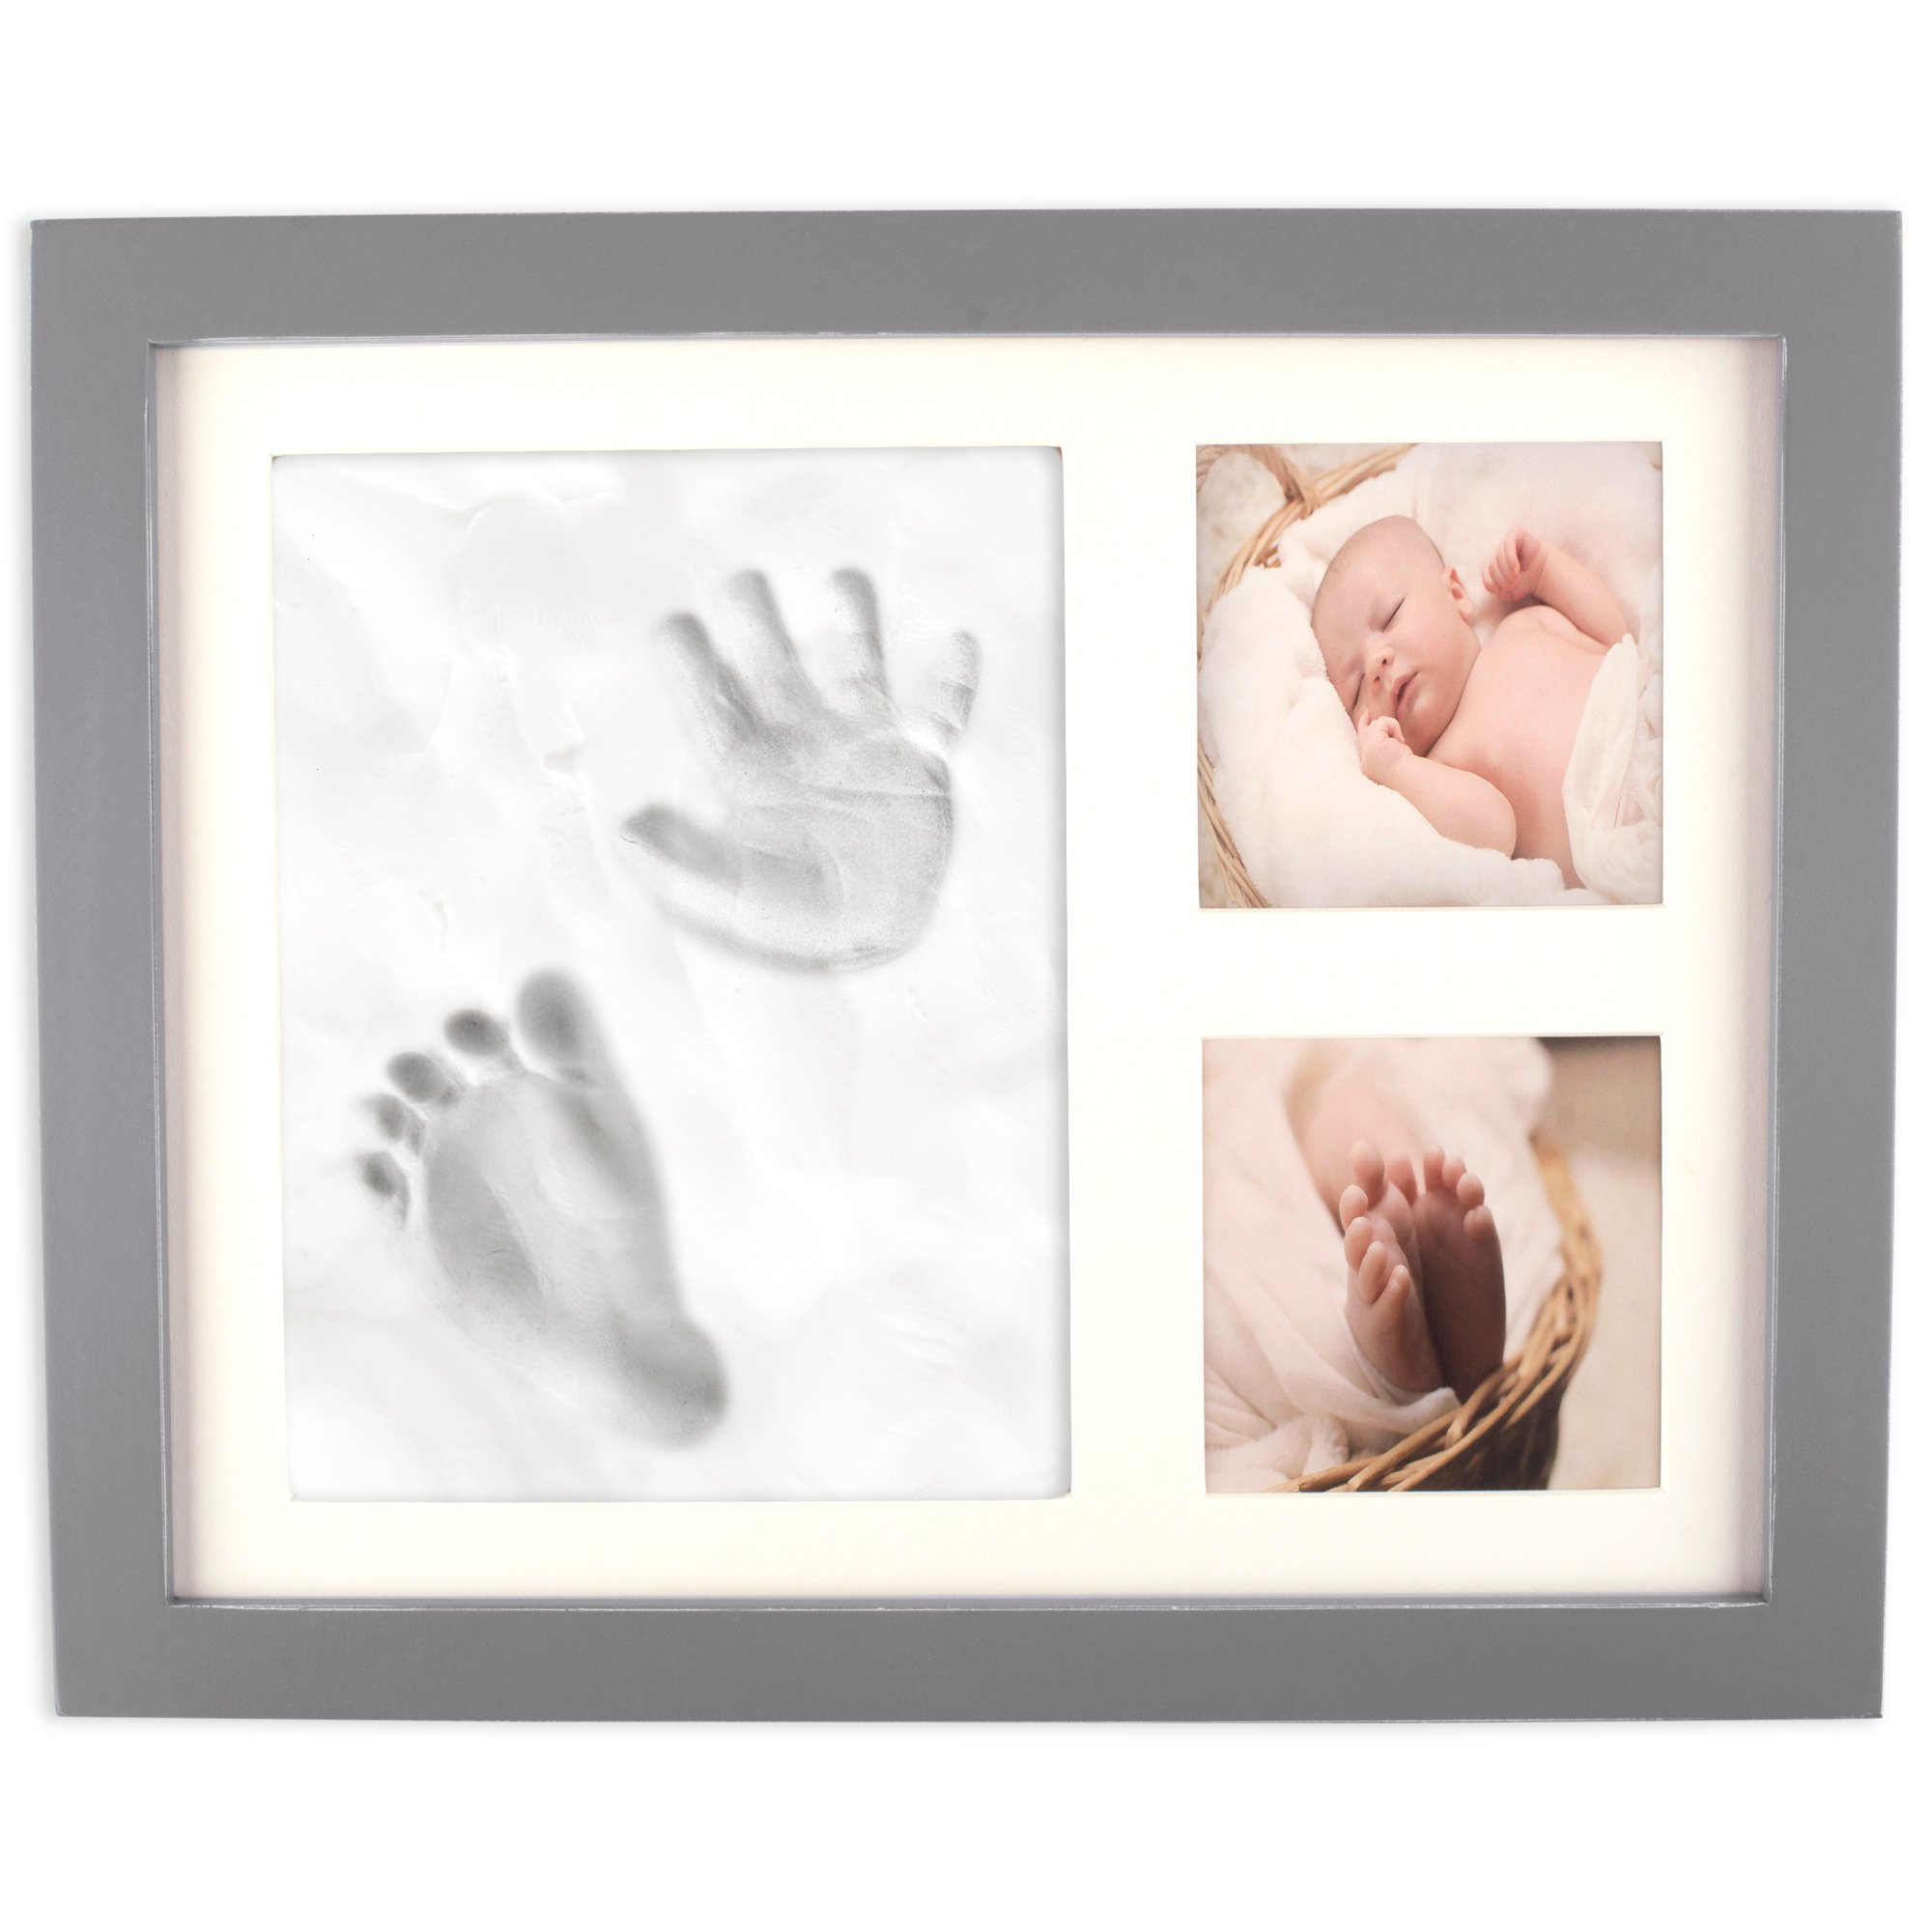 Home Traditions Z01771 Baby Handprint and Footprint Kit Frame for Newborn Boys and Girls, Personalized Gifts, Shower Registry, Keepsake Box, Nursery Decor - Holds Two 3x3 Images and Clay Included